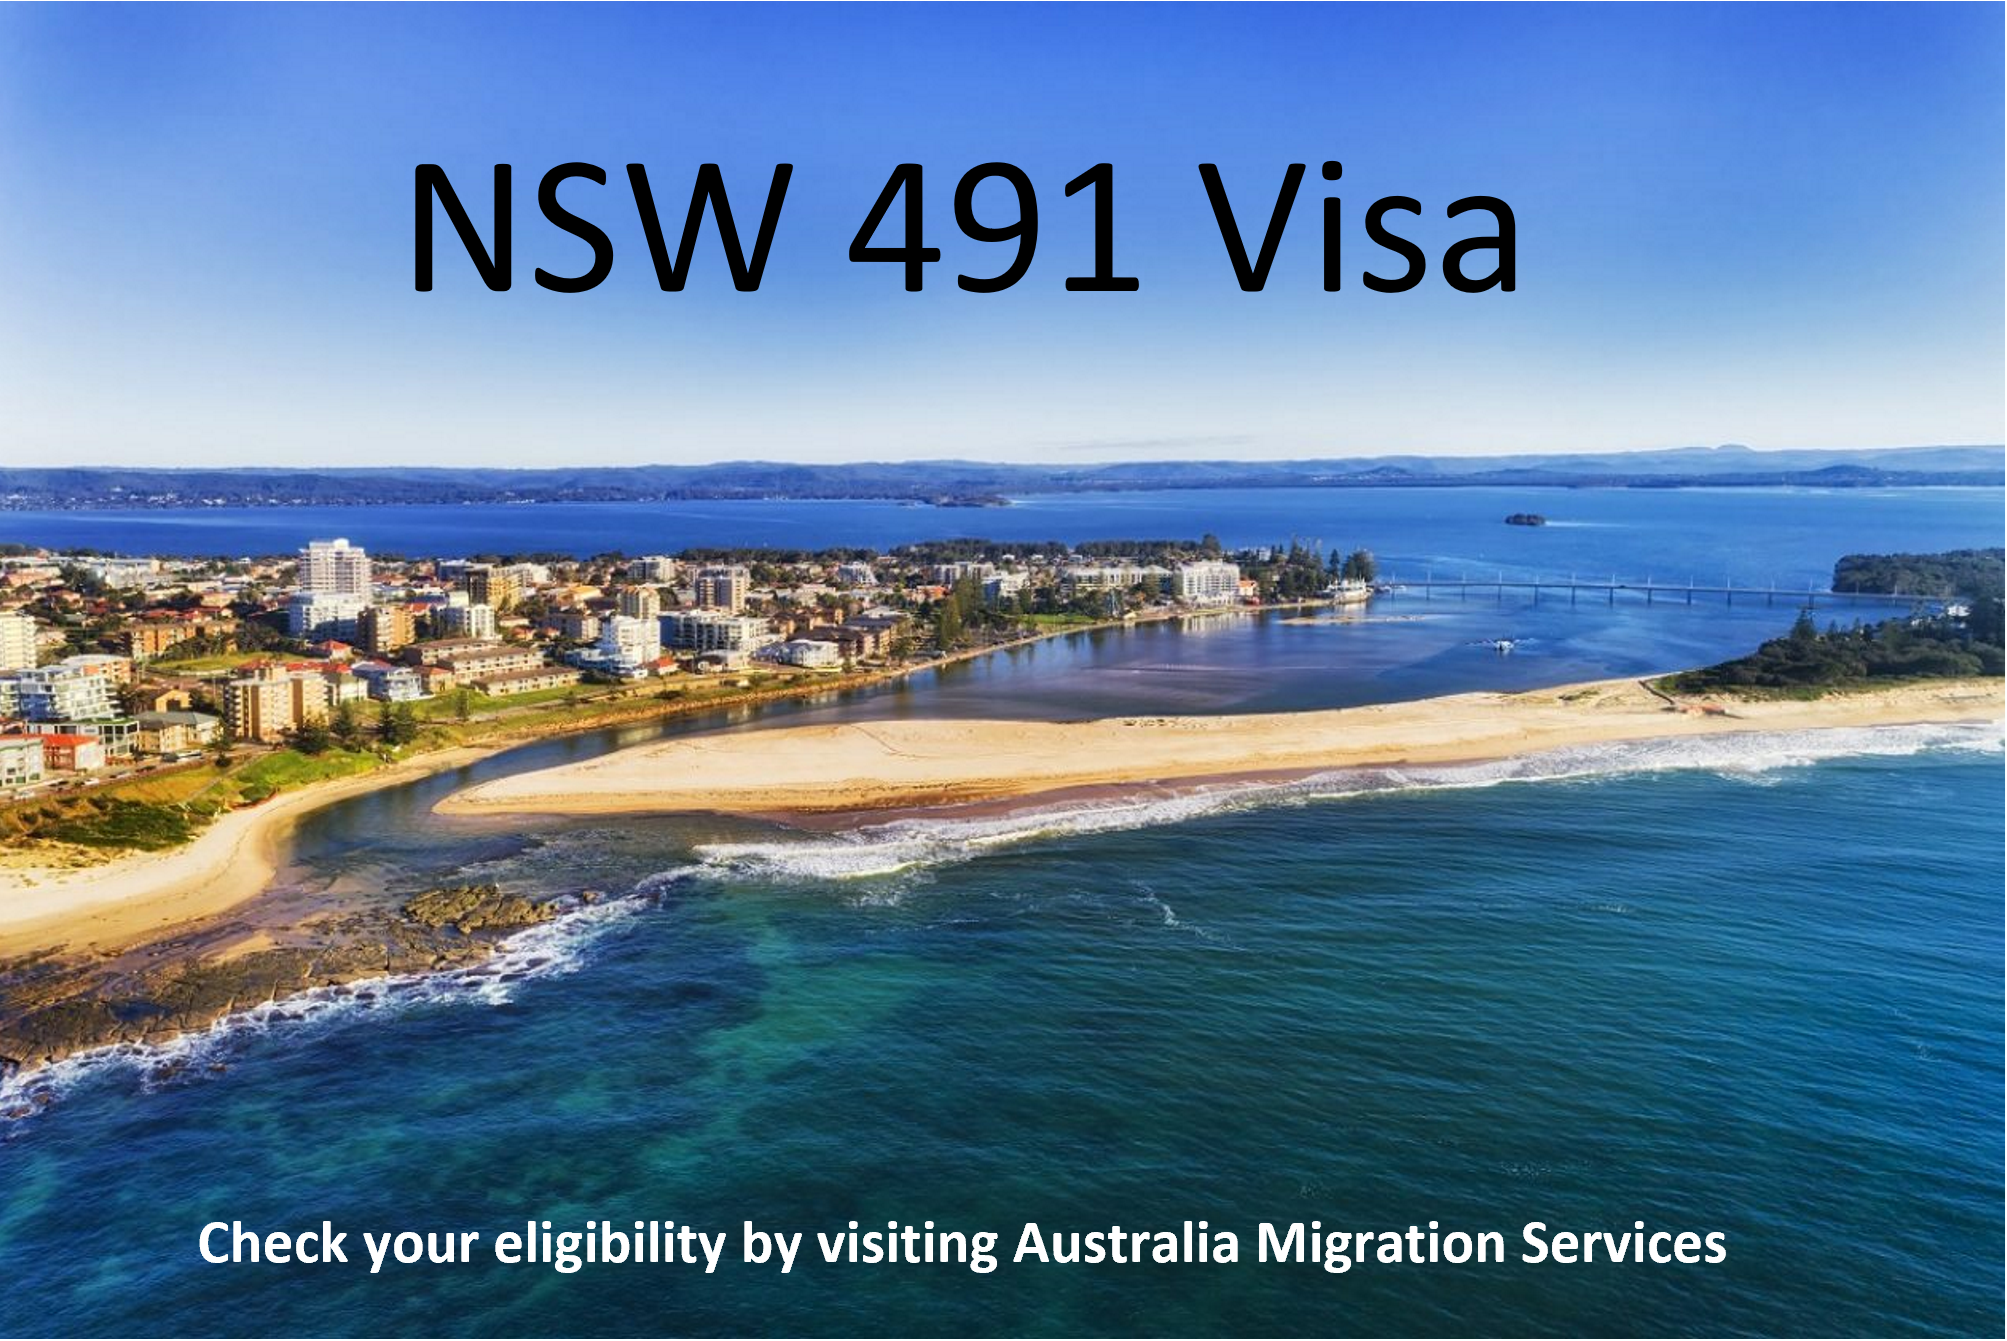 NSW 491 visas open from next week!